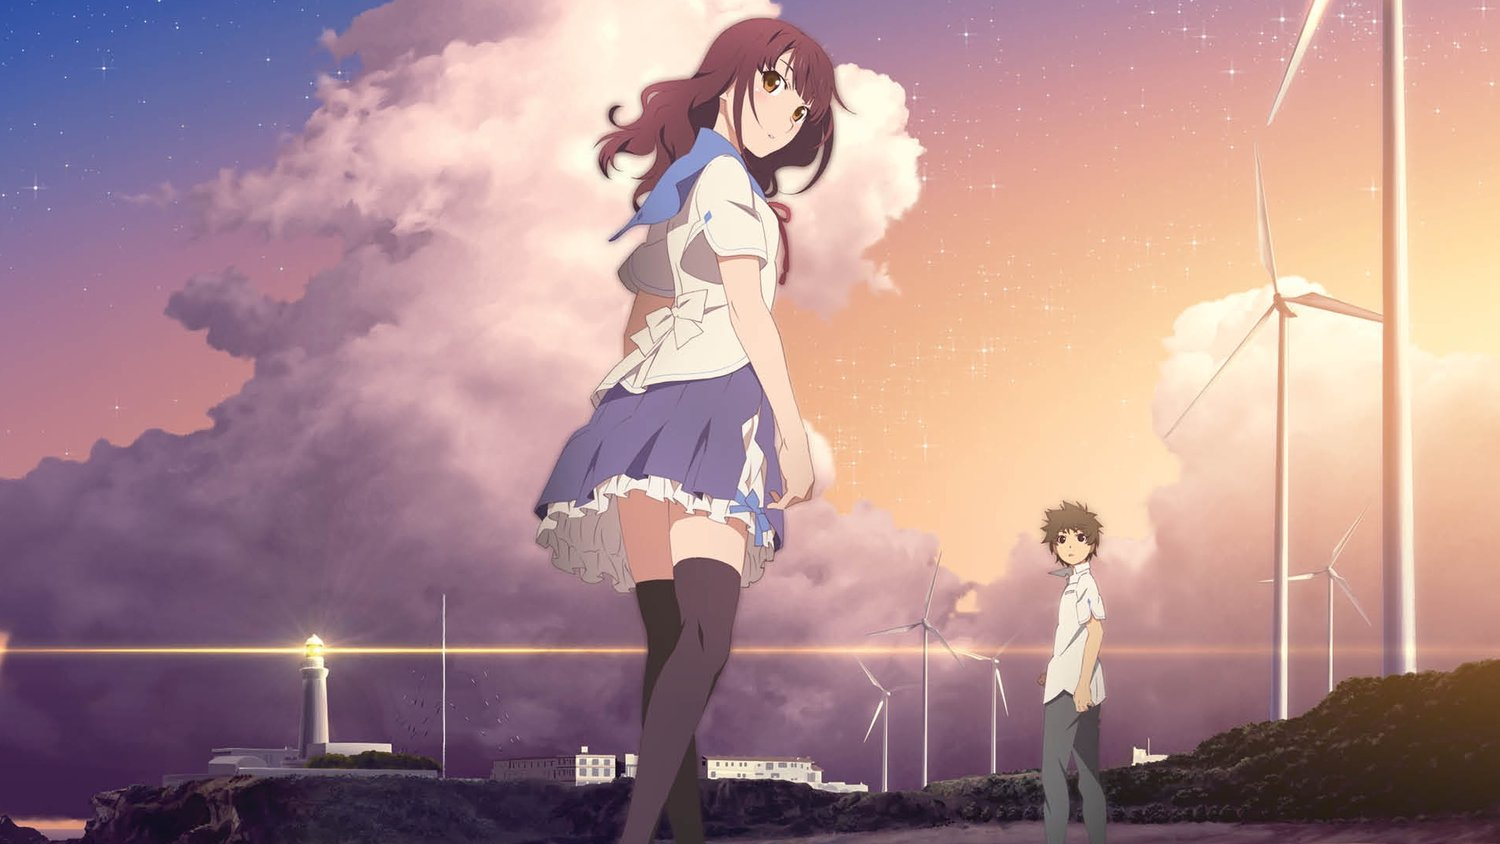 The Producer Of The Hit Anime Your Name Releases Trailer For His New